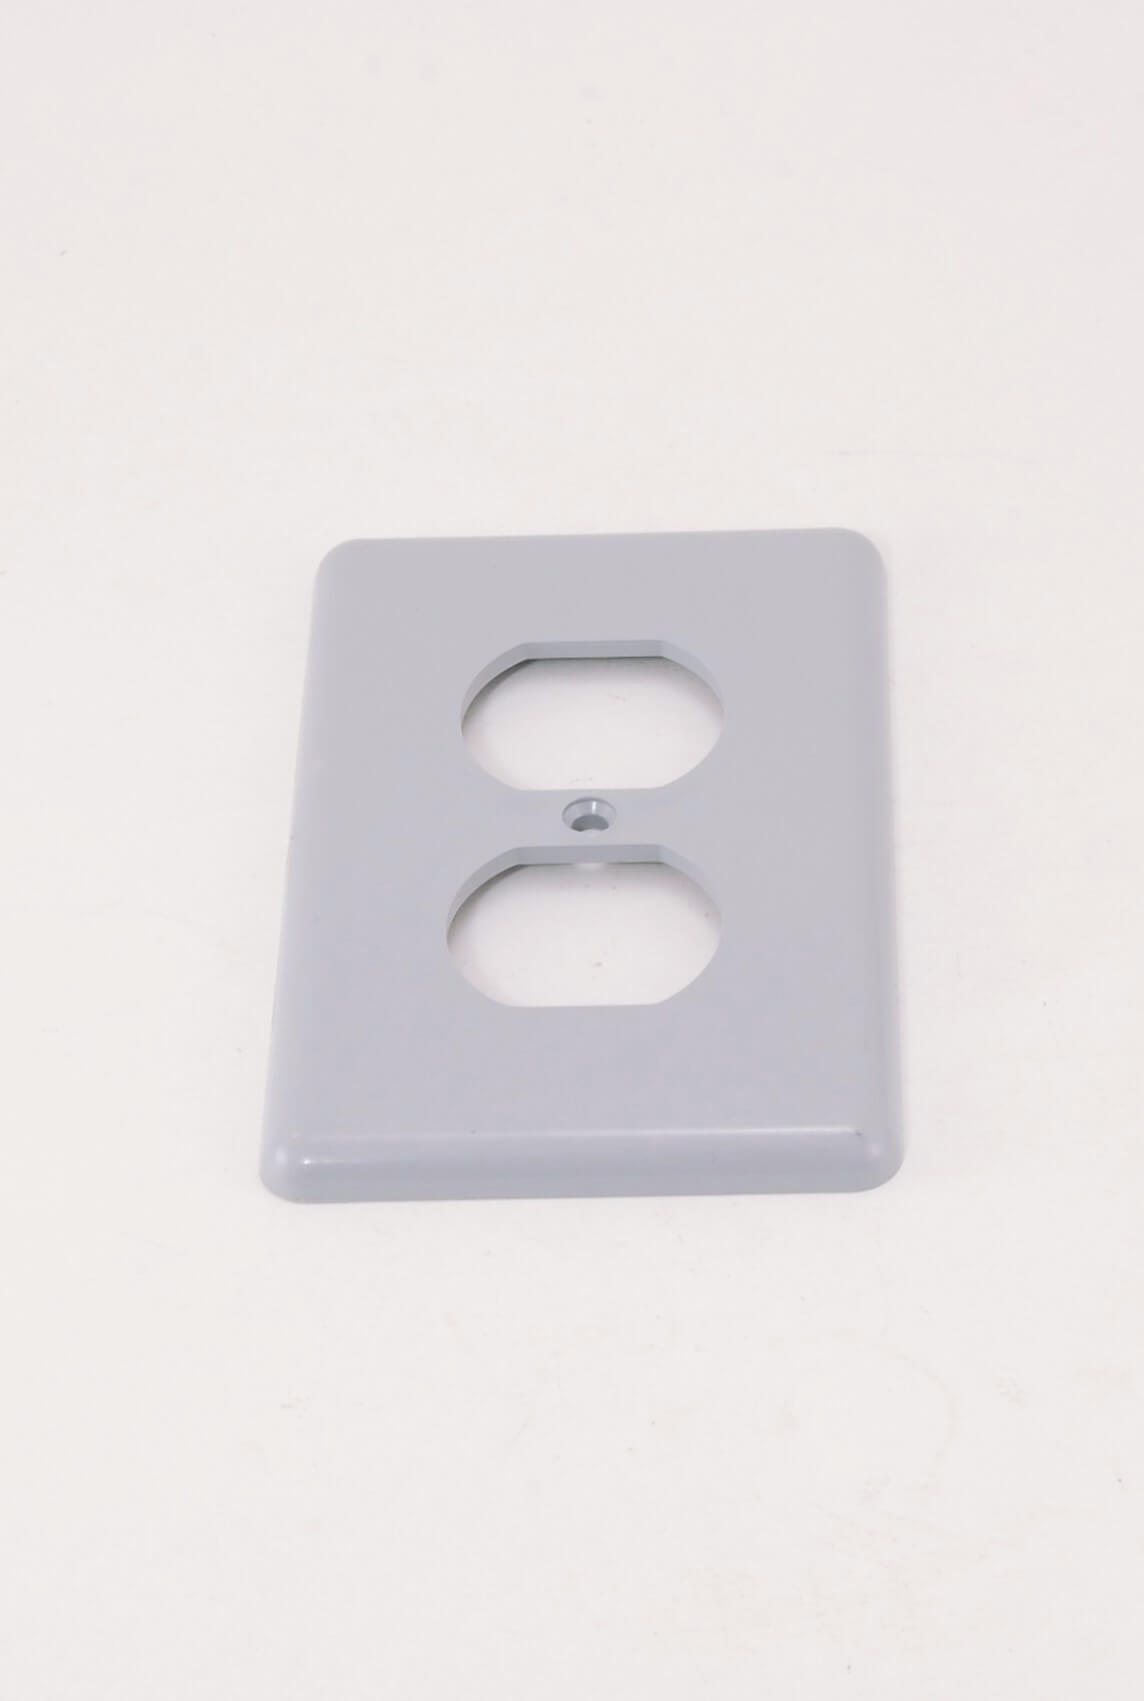 Electrical Gang Cover Plate